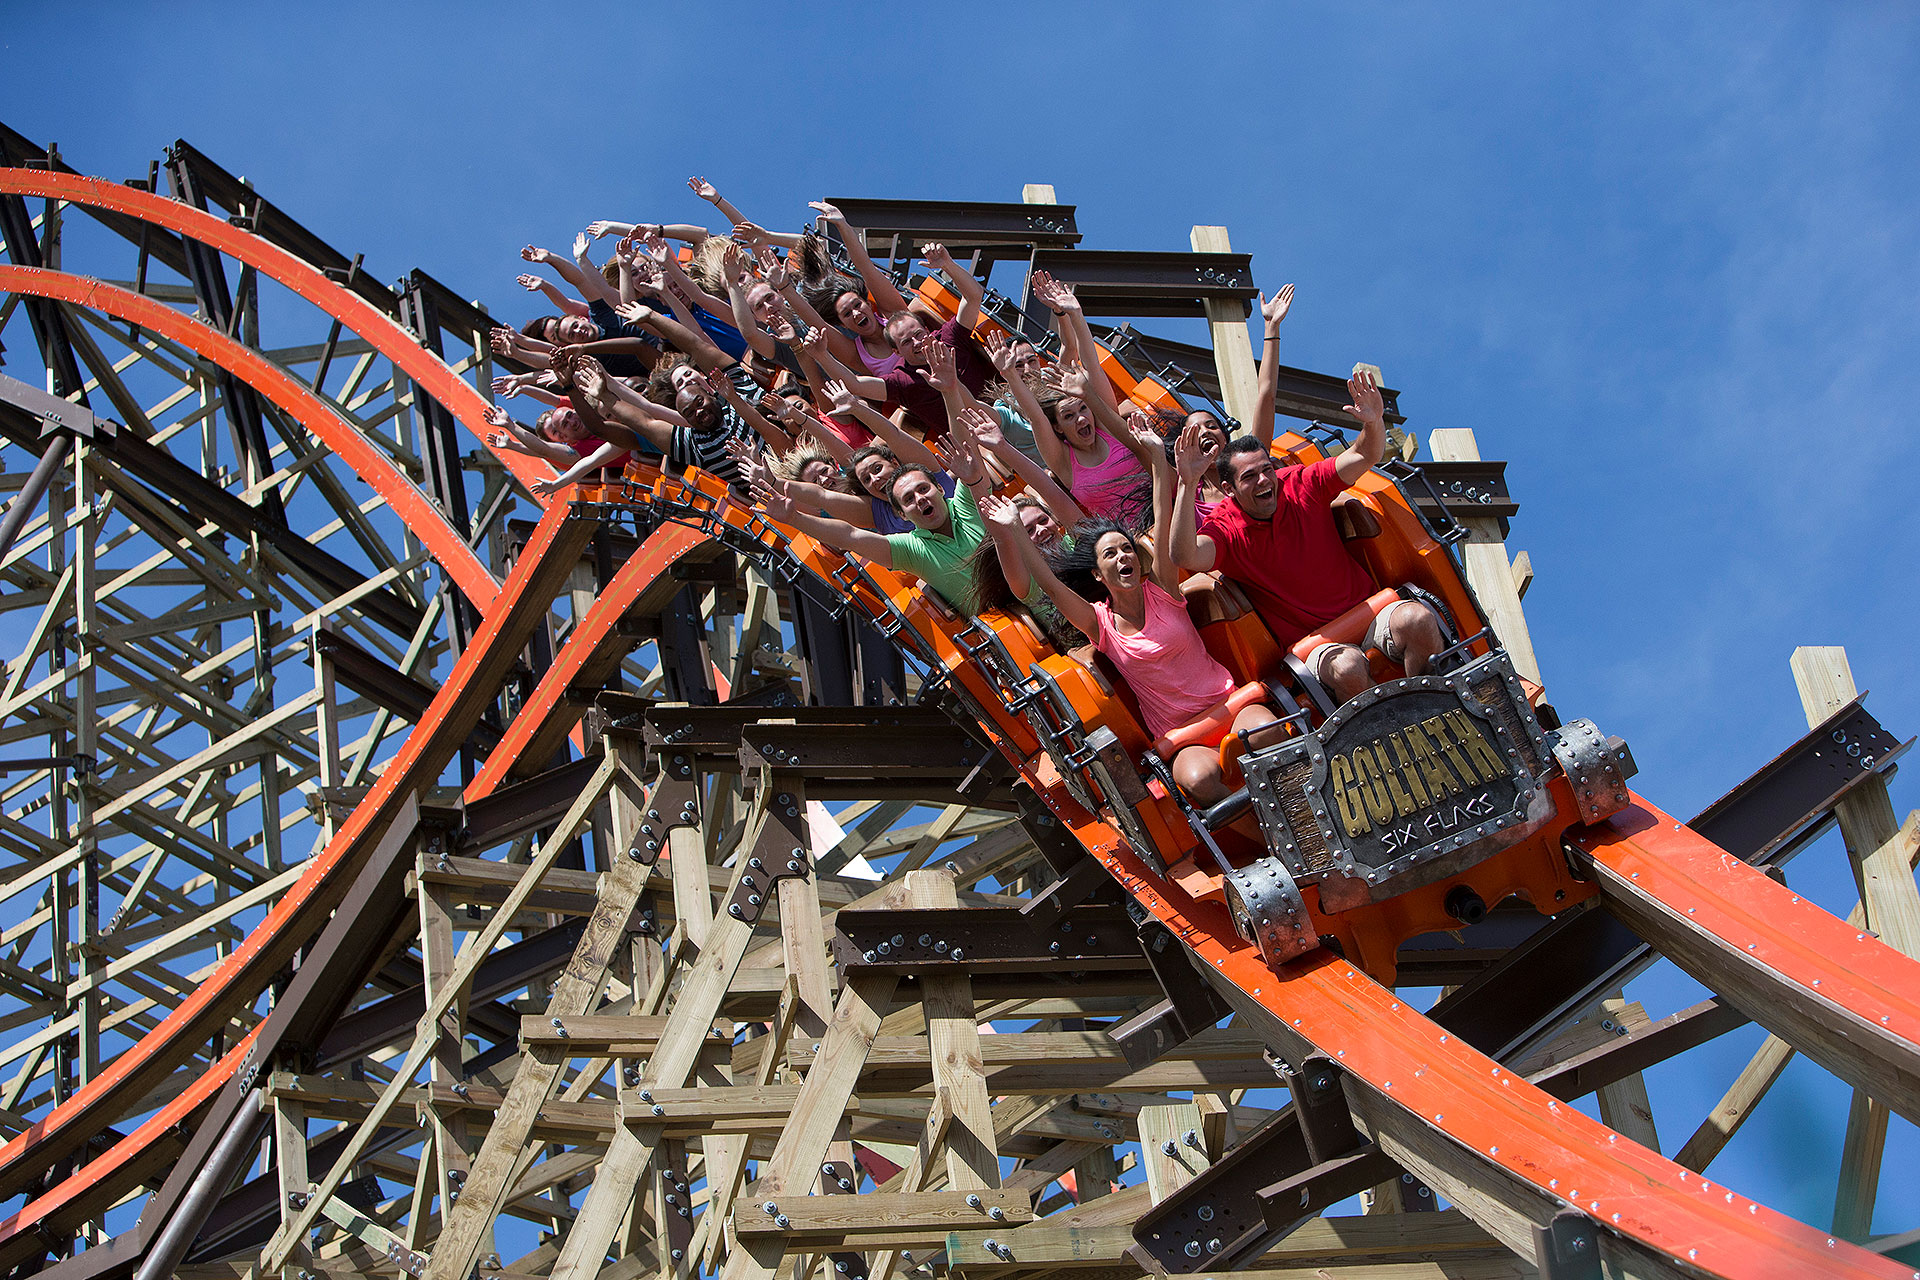 Goliath Roller Coaster; Courtesy of Six Flags Great America